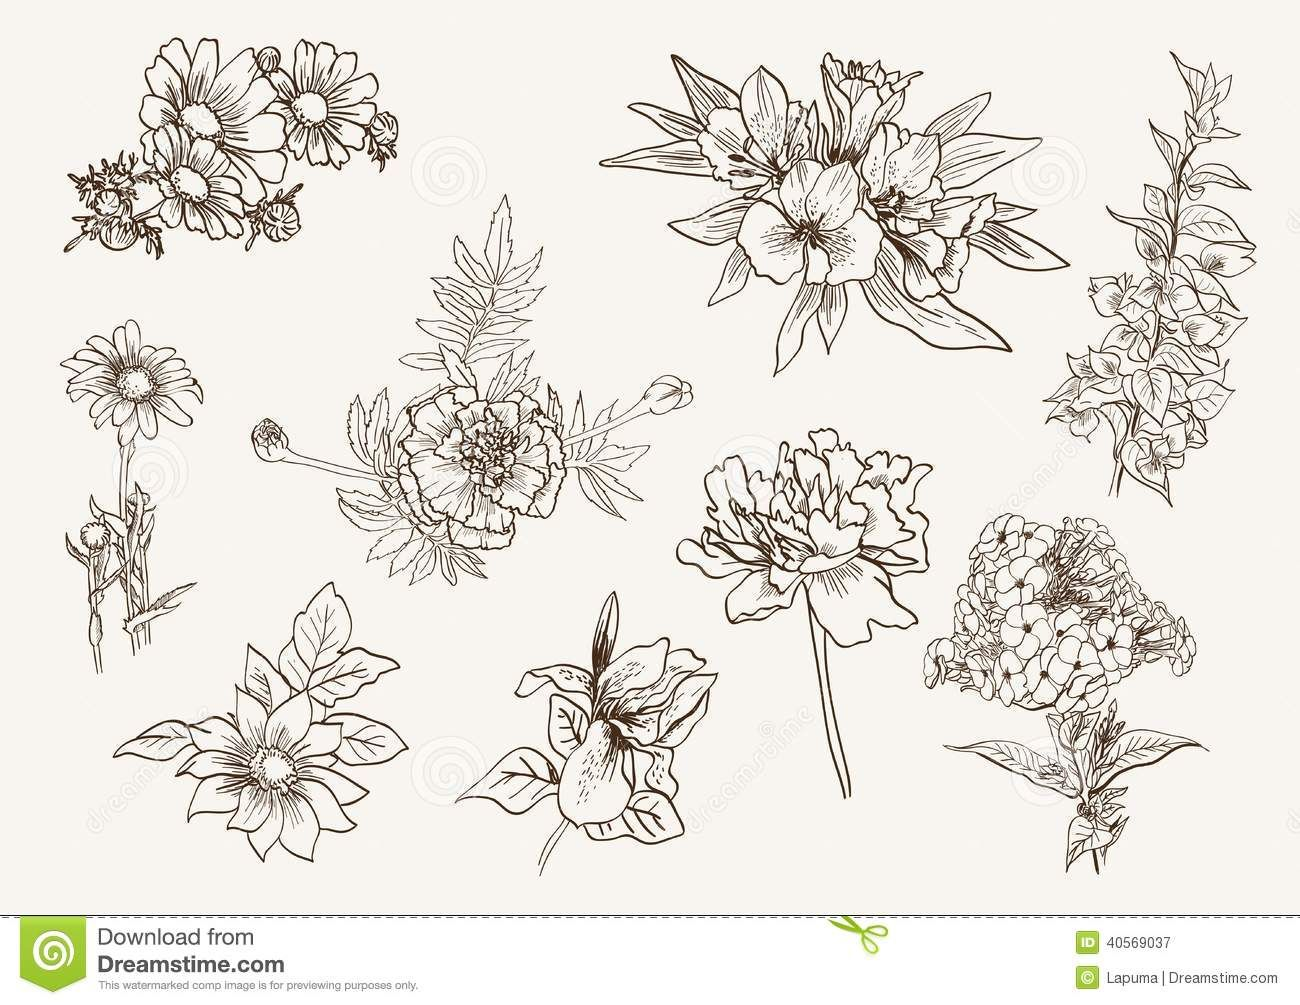 wildflowers drawing - Google Search | Tattoos | Pinterest ... - photo#19